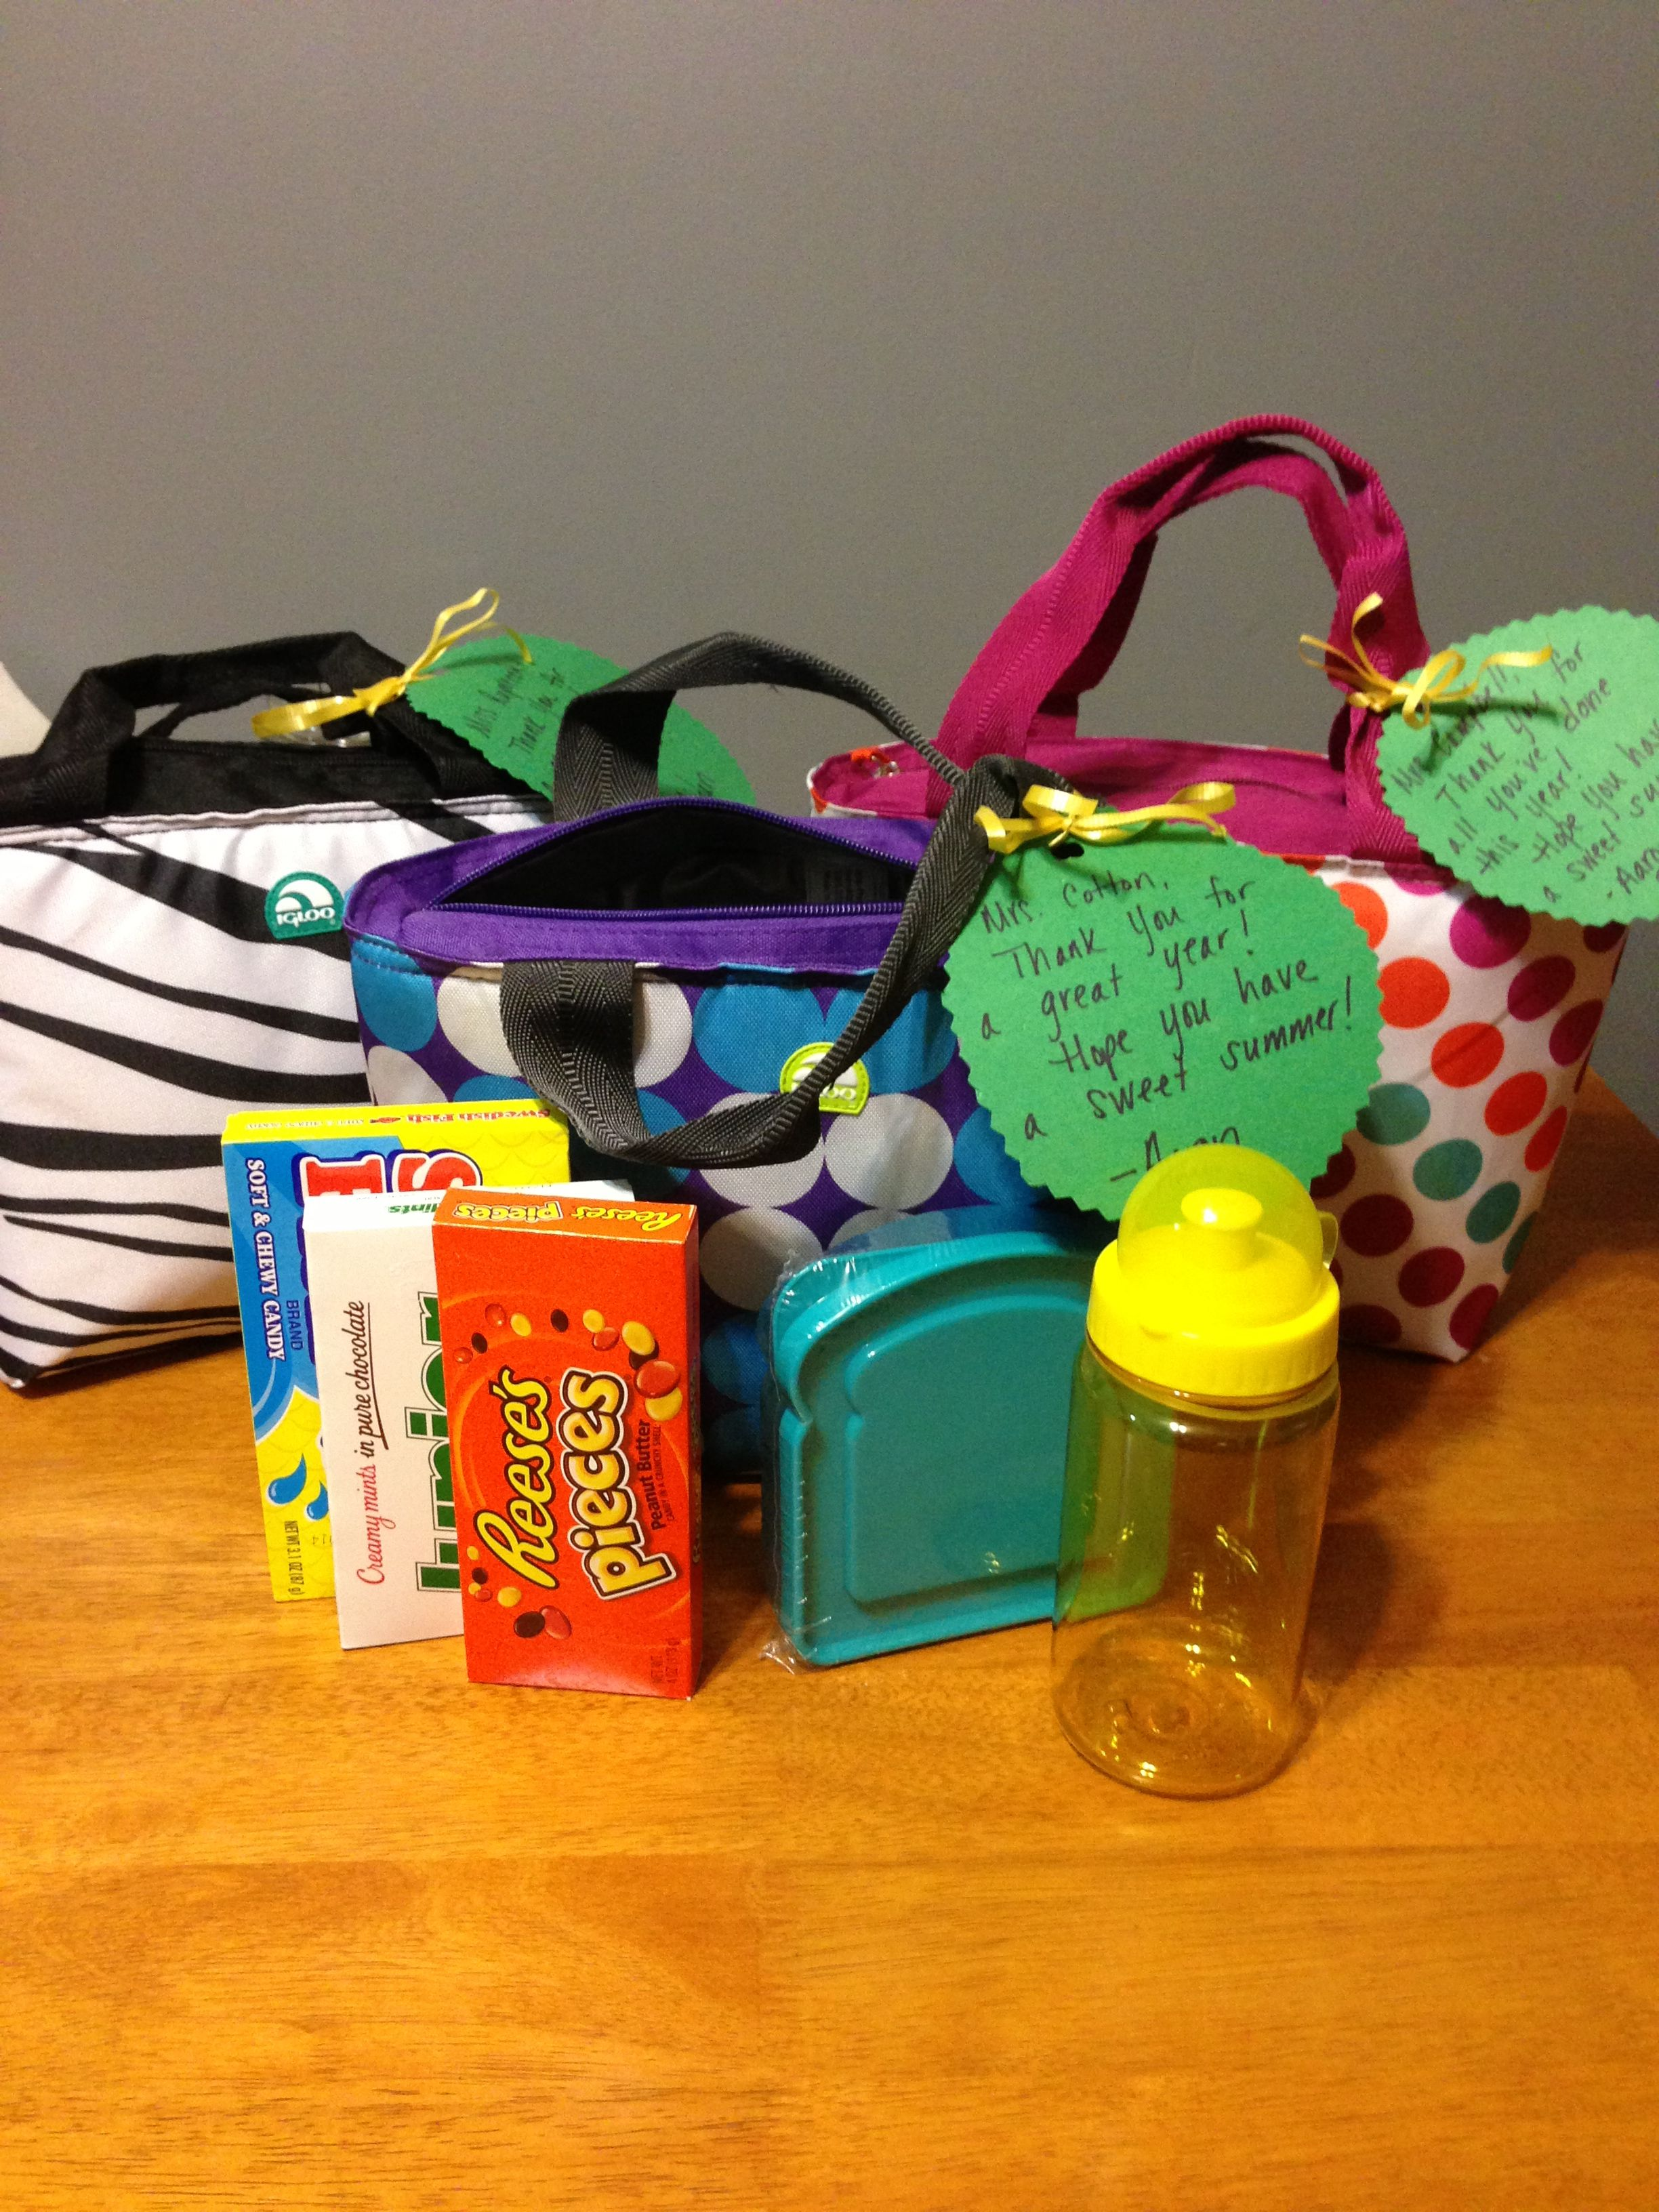 End of year teacher gift- I LOVE  the idea of using mini coolers as gift bags!